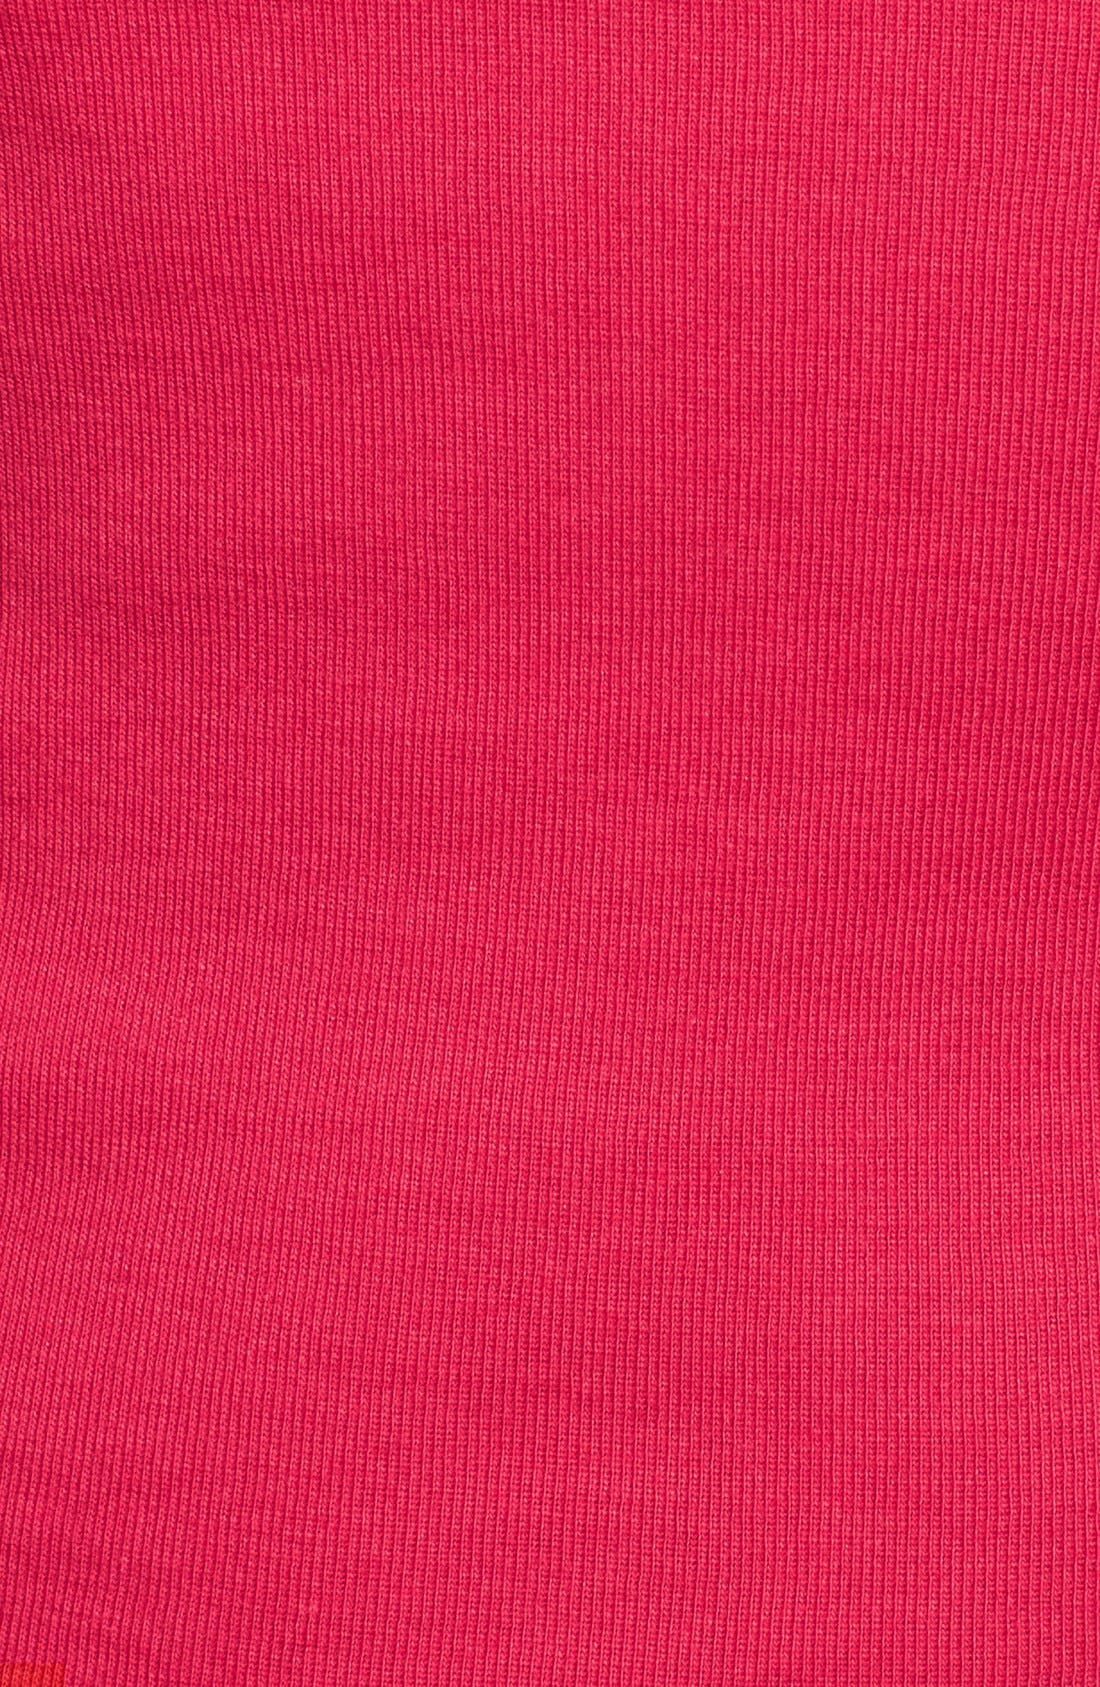 Ballet Neck Cotton & Modal Knit Elbow Sleeve Tee,                             Alternate thumbnail 5, color,                             Red Barberry